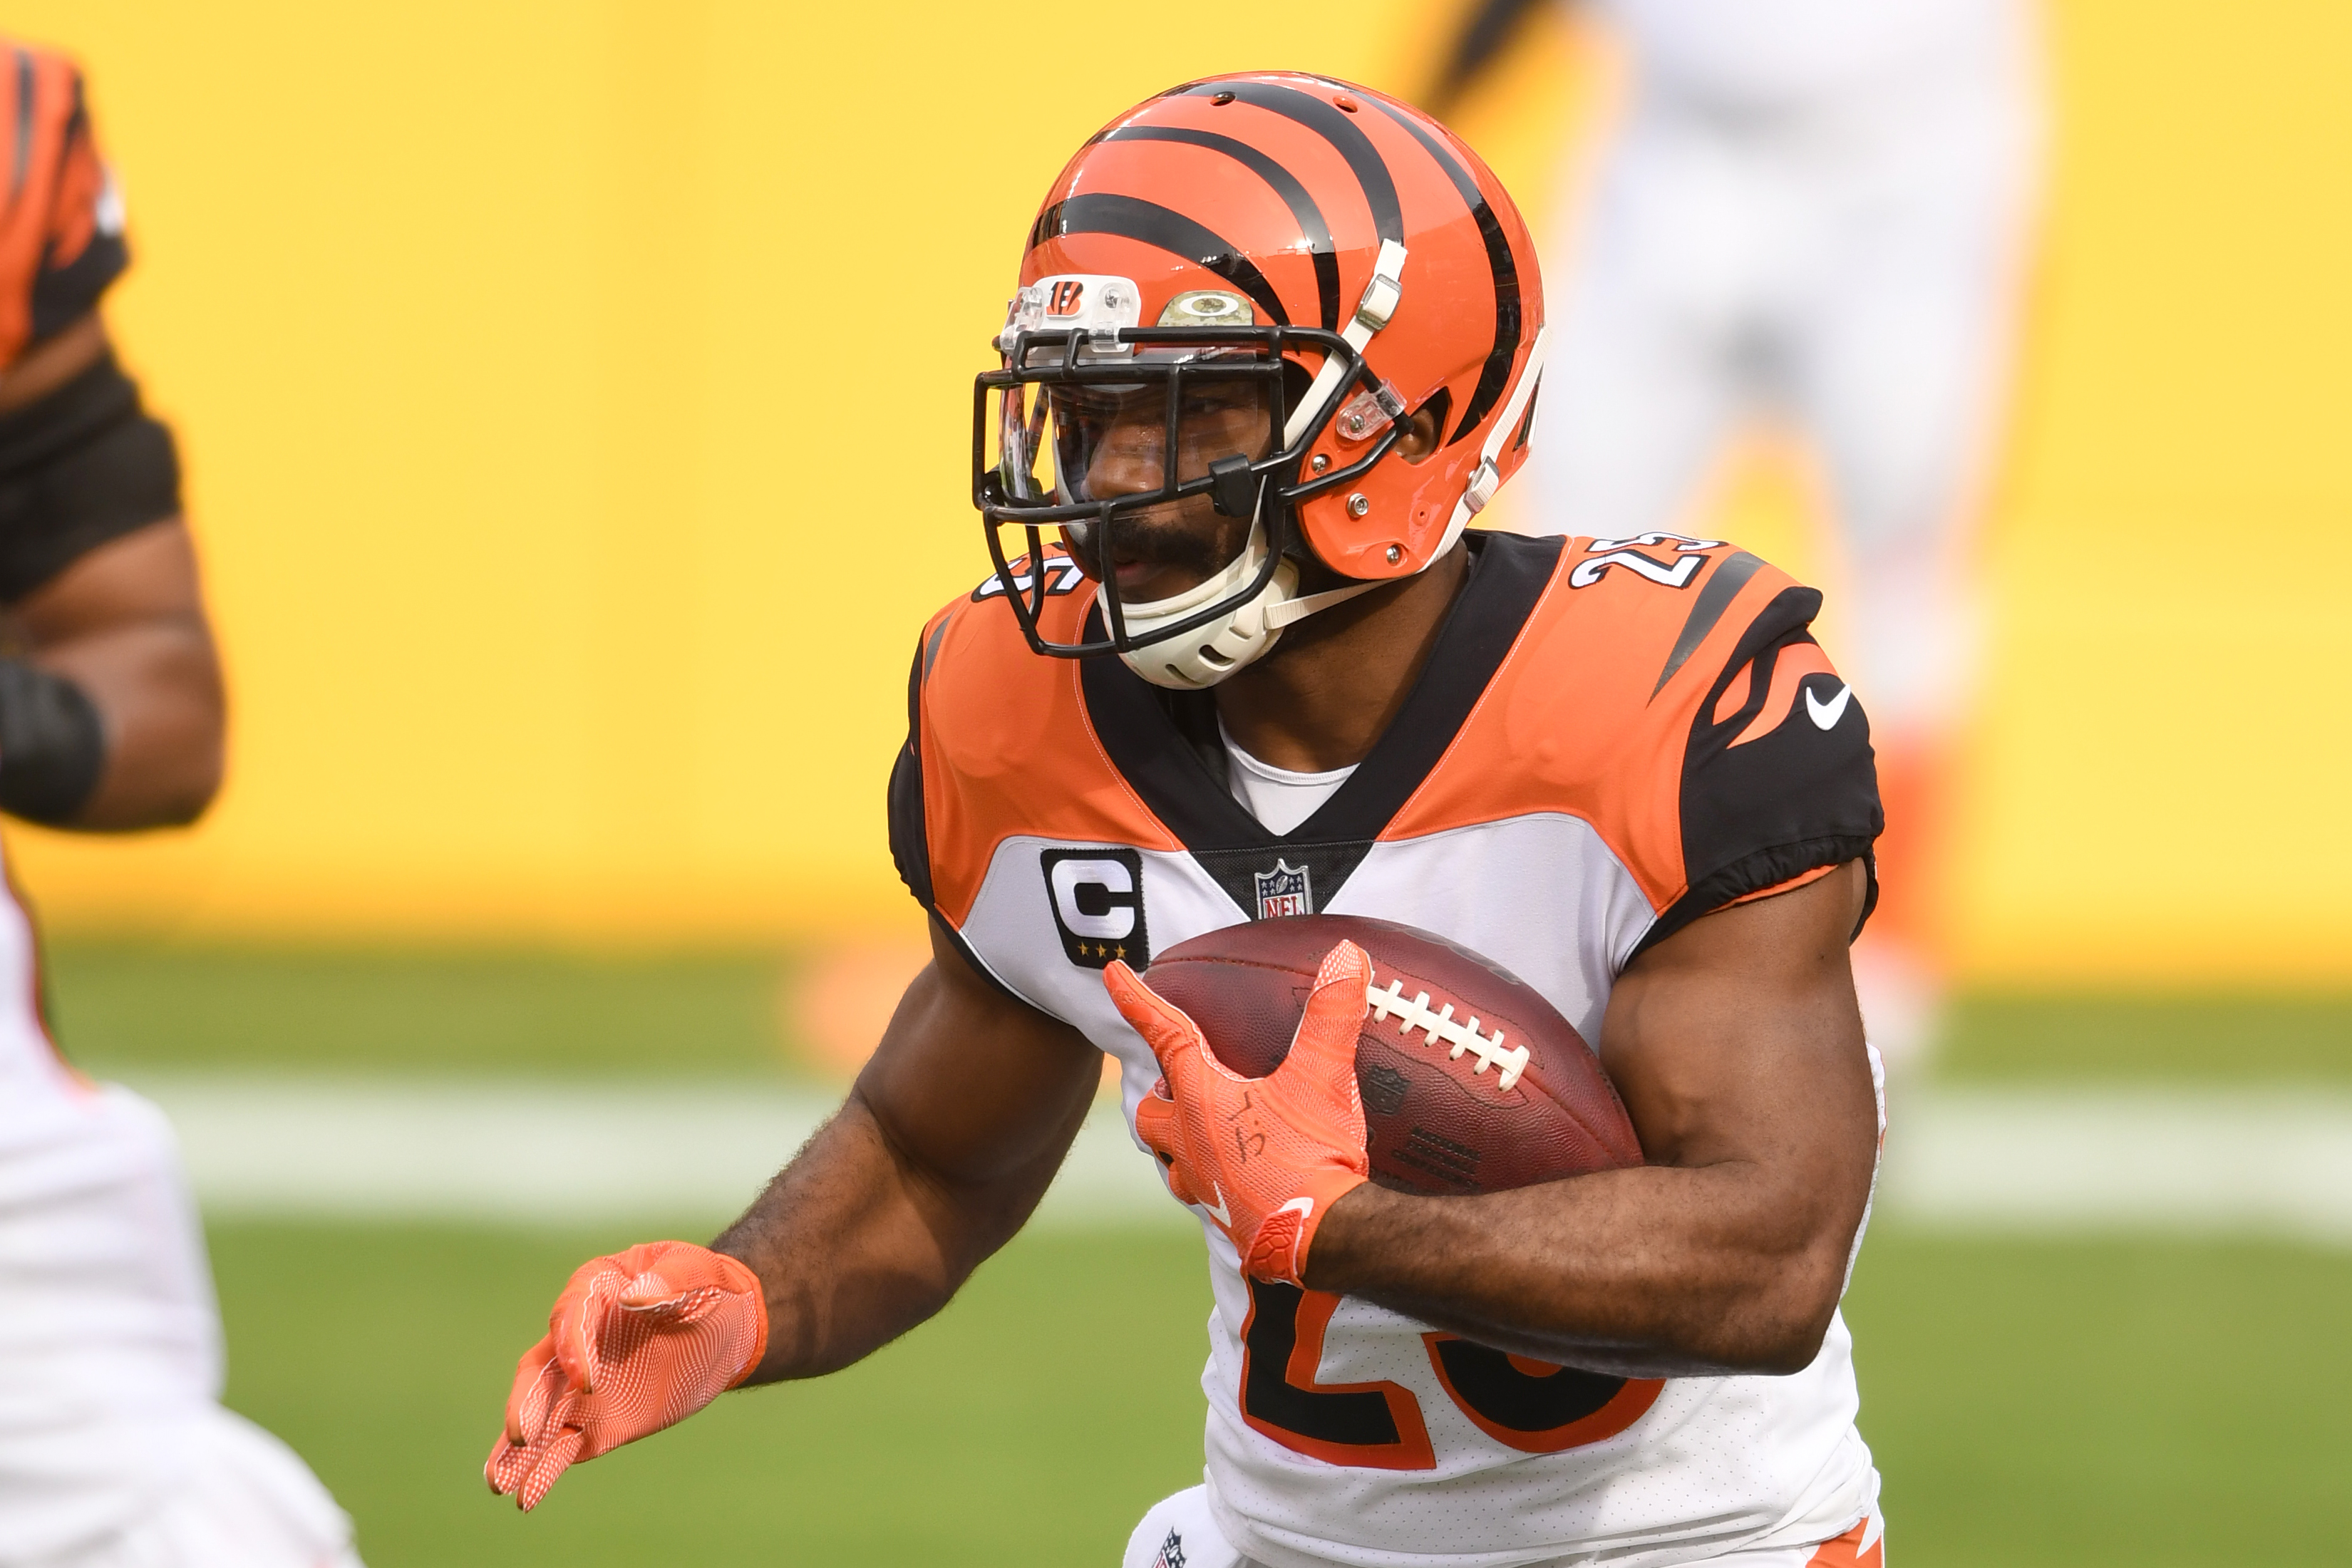 Giovani Bernard #25 of the Cincinnati Bengals runs with the ball a NFL football game against the Washington Football Team on November 22, 2020 at FedExField in Landover, Maryland.